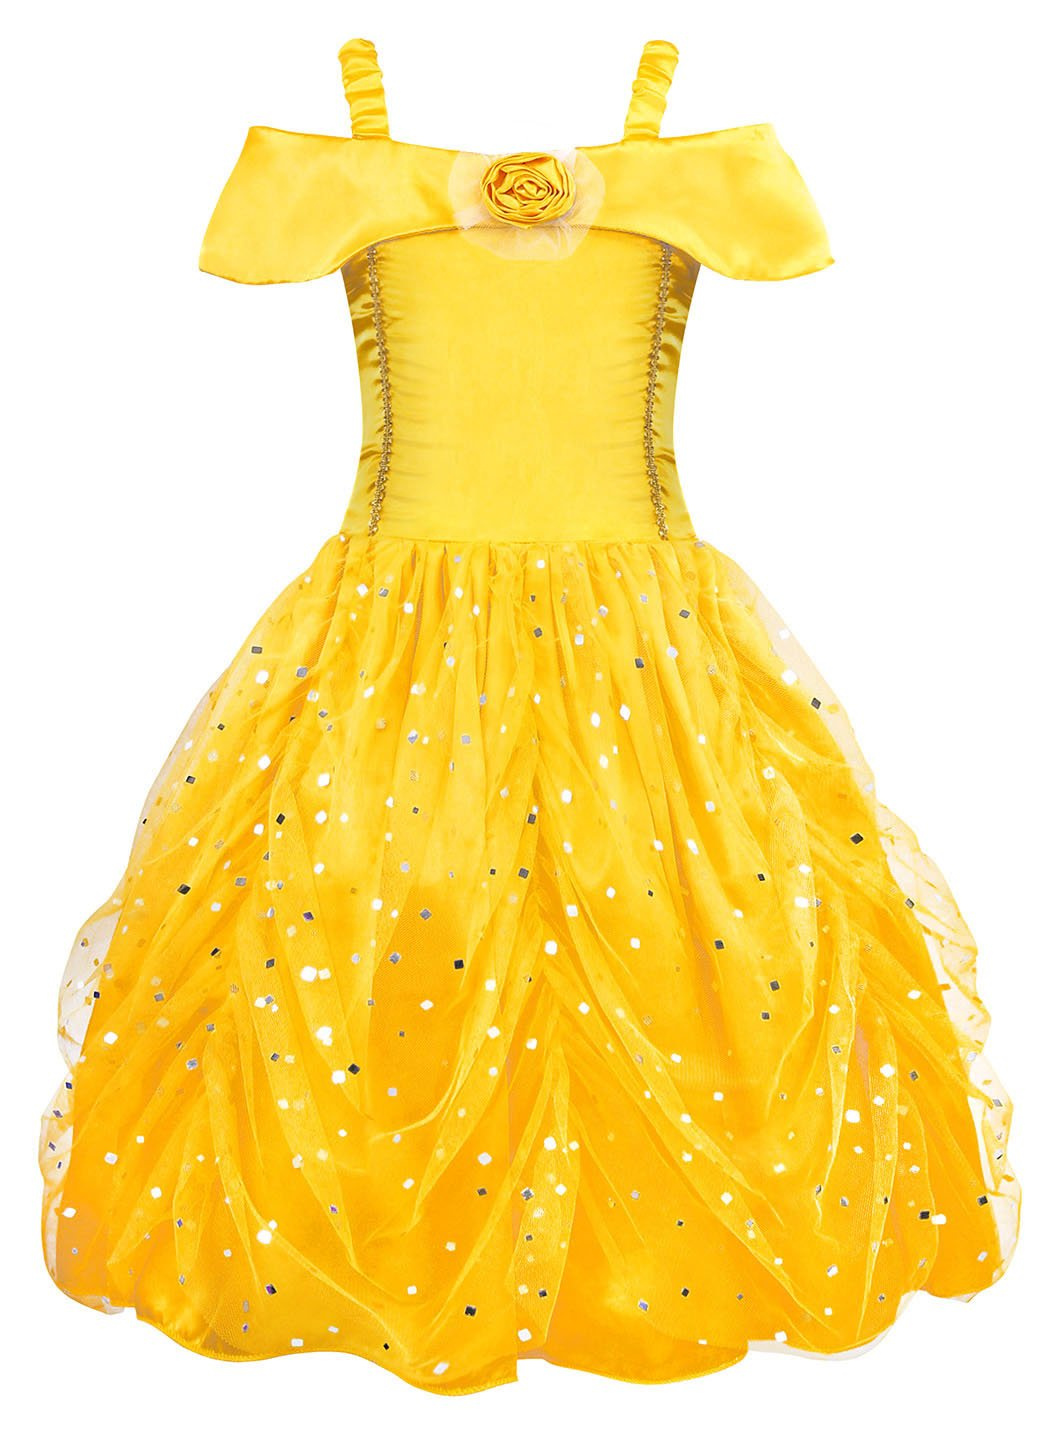 AmzBarley Princess Belle Costume Layered Dress for Kids Girls Halloween Cosplay Party Fancy Dress up Princess Belle Dress